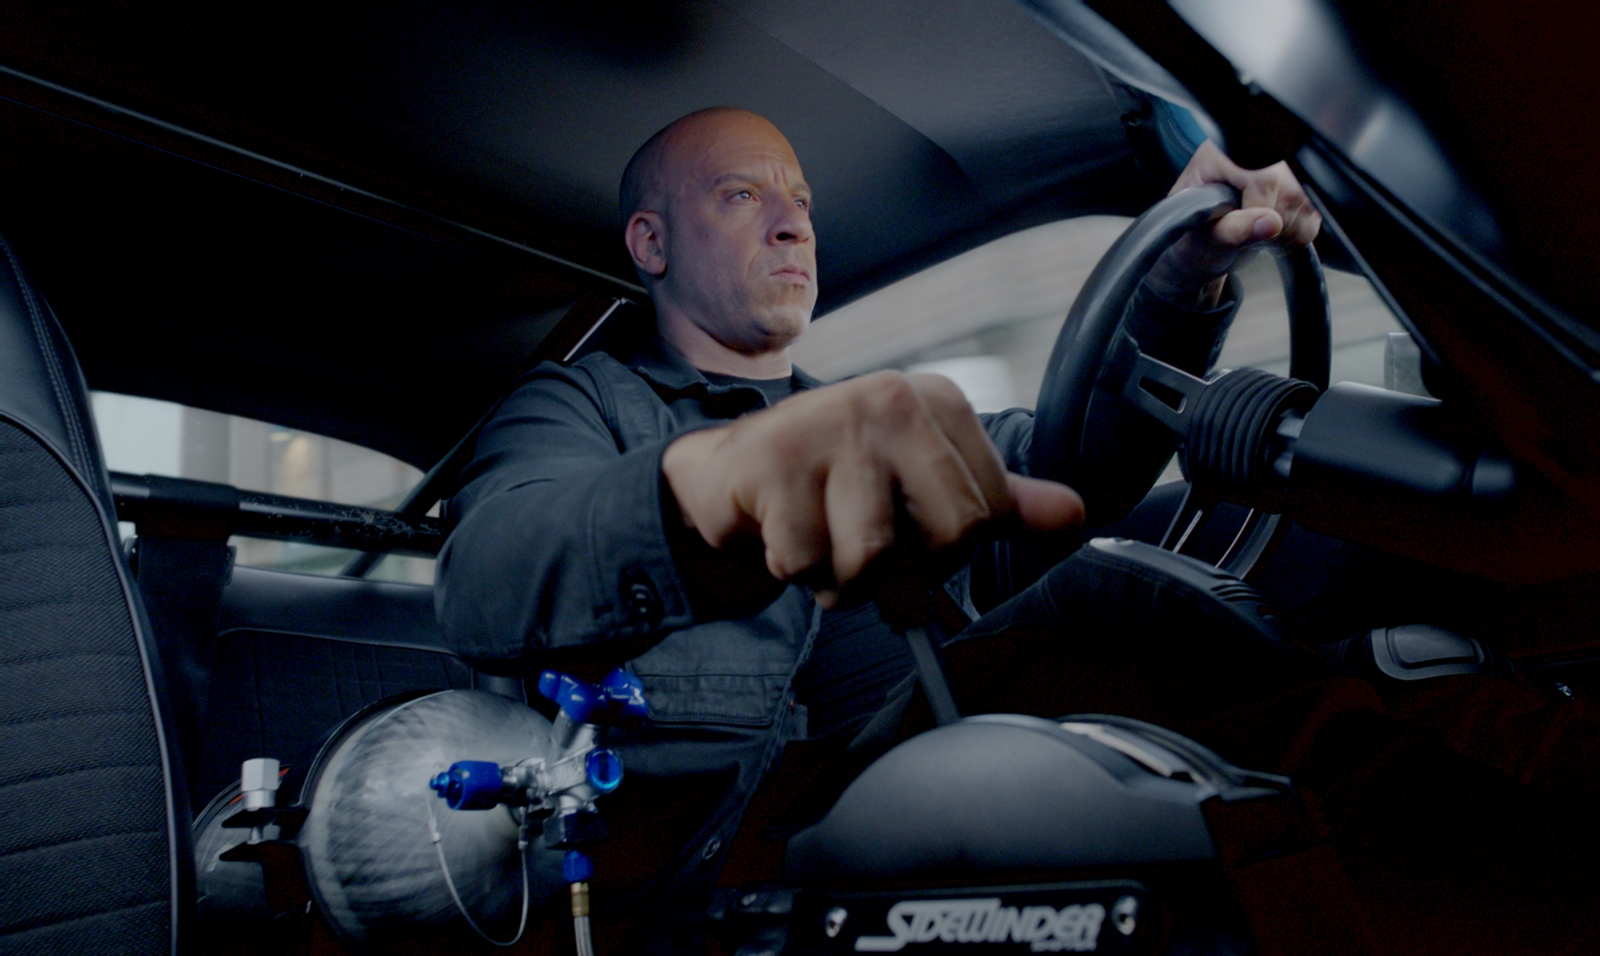 Vin Diesel in Fast and Furious 8